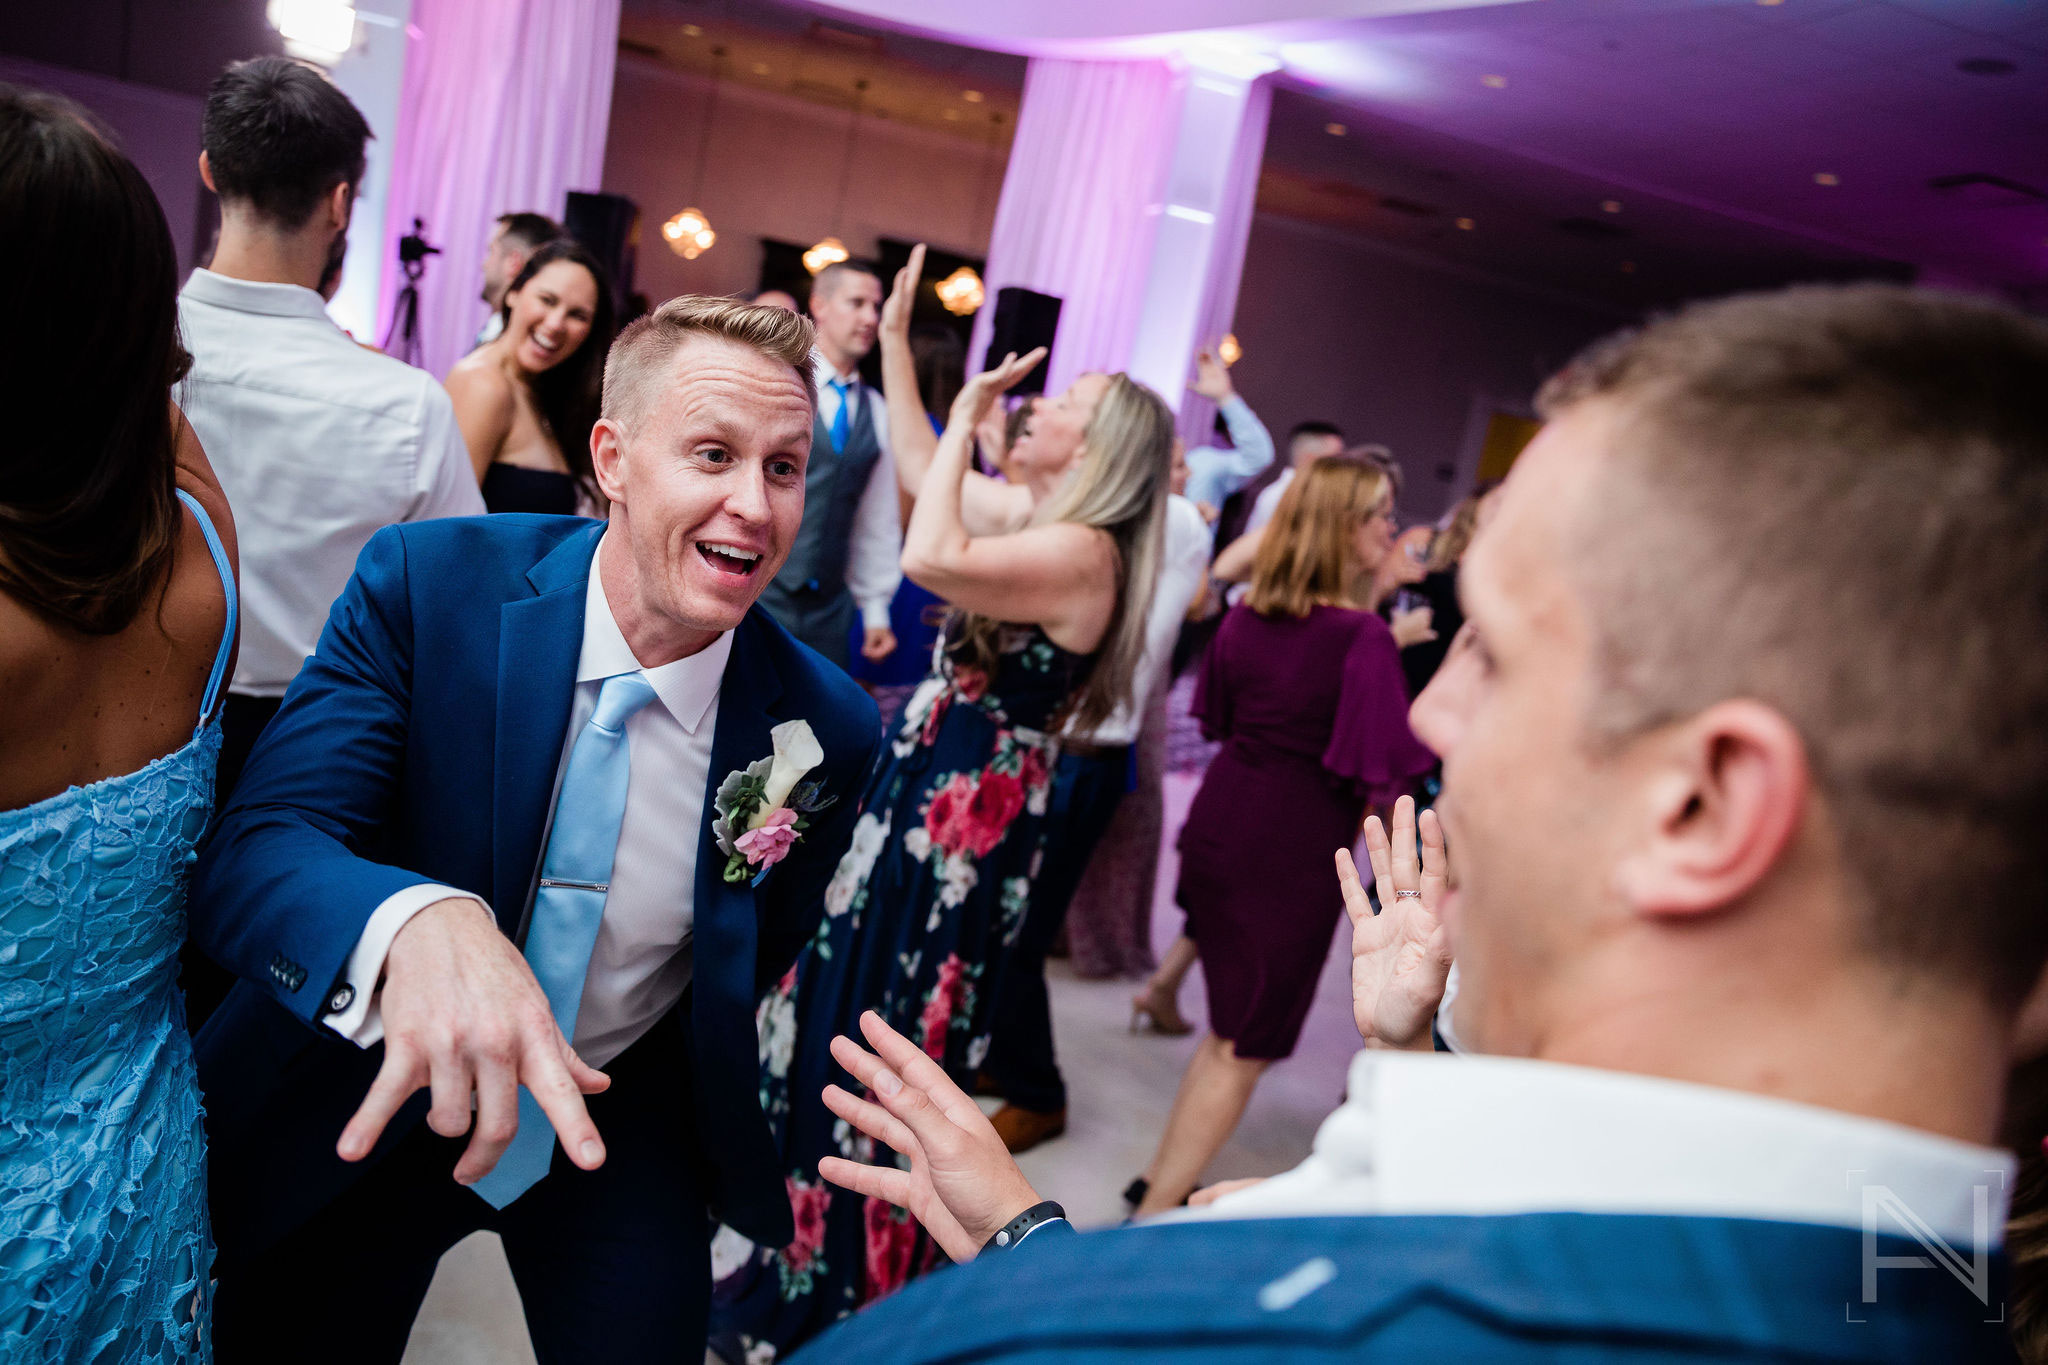 dance party at a weekday wedding